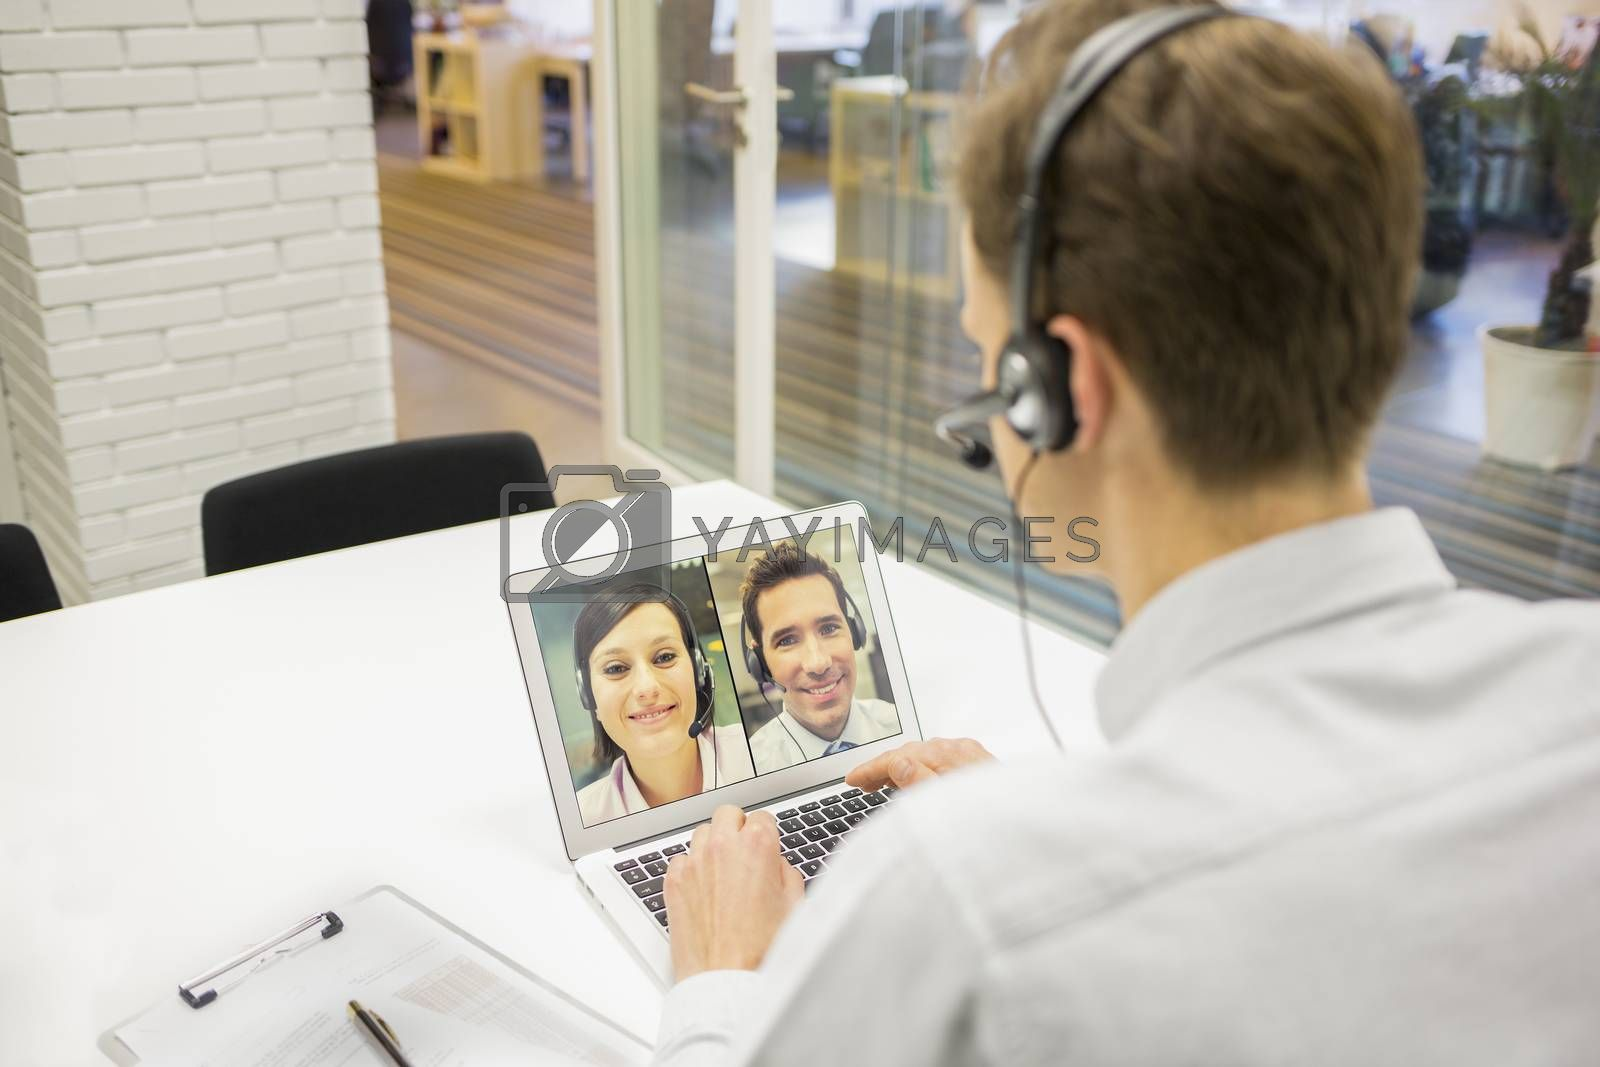 Male calling computer desk video phone